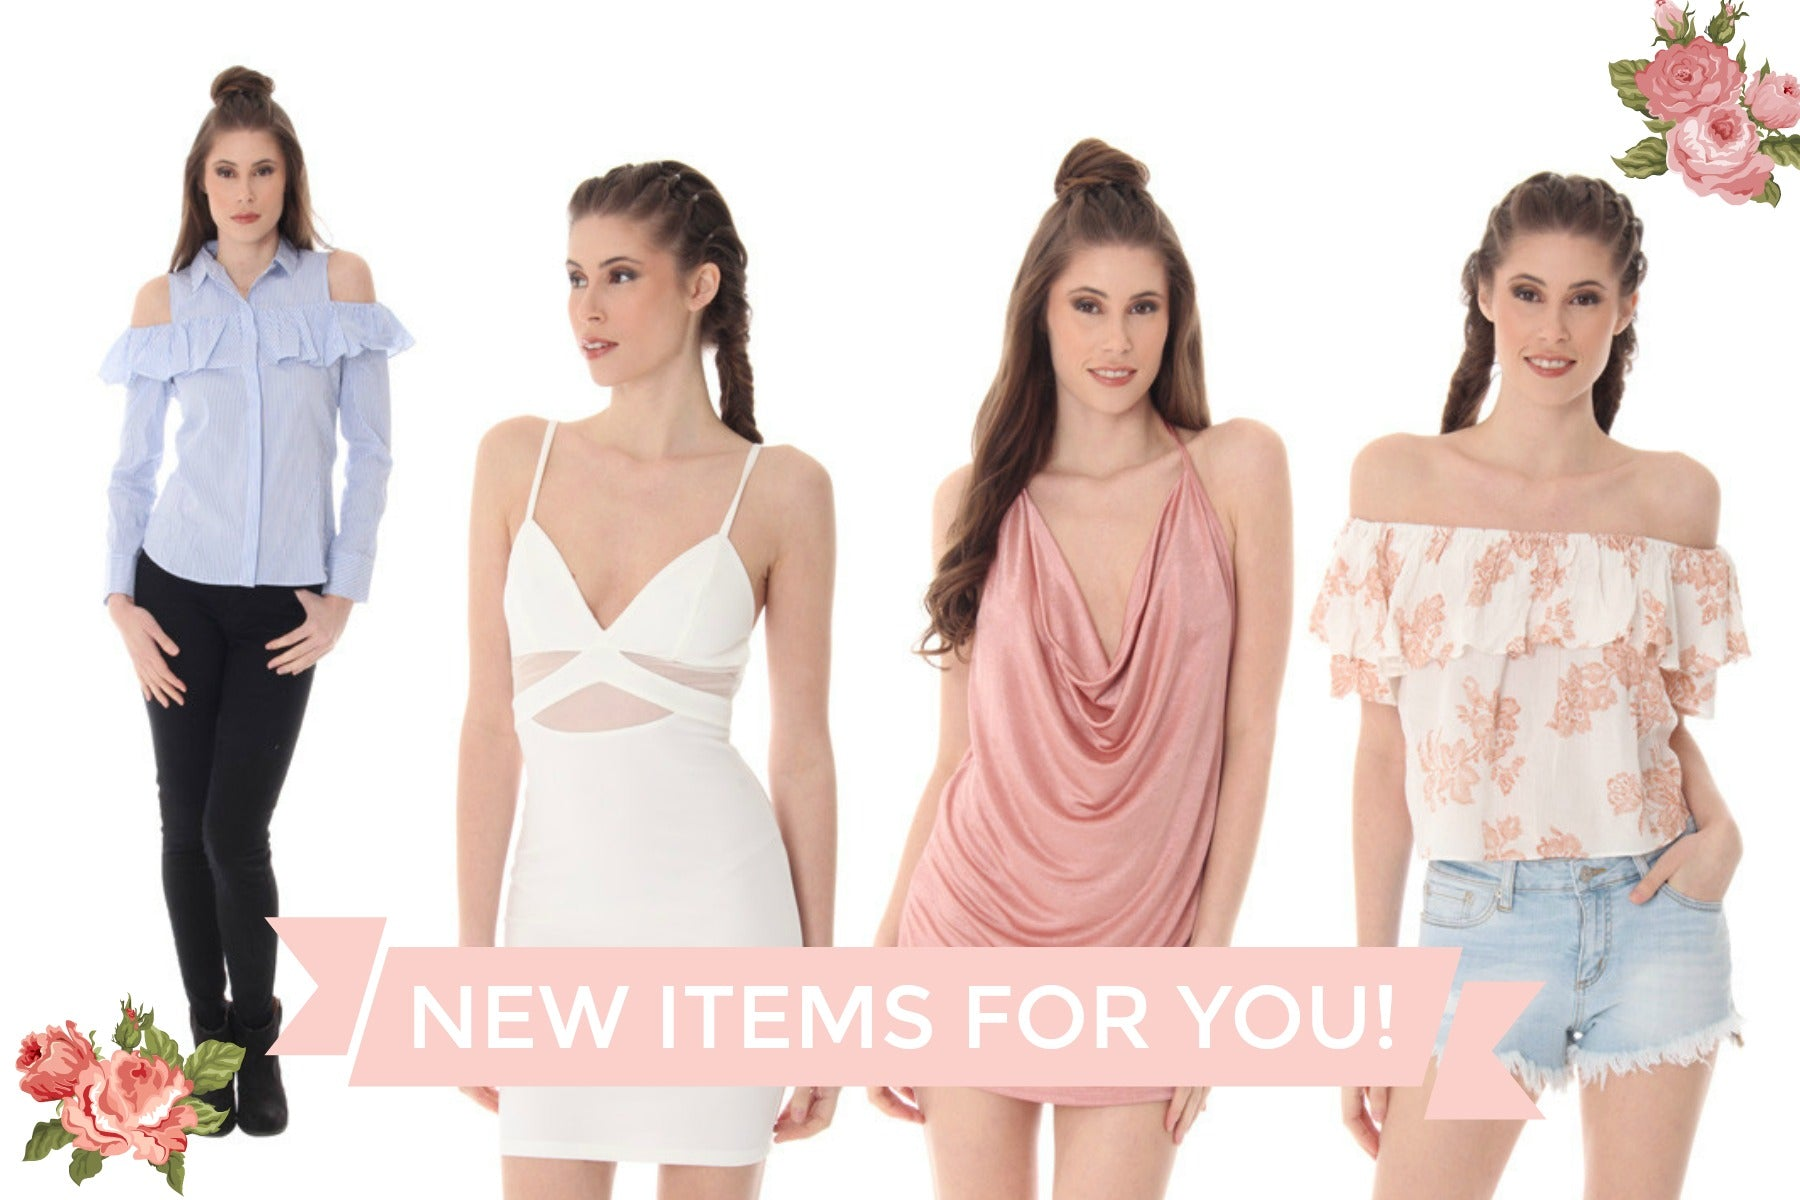 d5c4dd53cb3ba ... it.. we have the trendiest fashion at the most affordable price for our  fashionable babes! Mystique Boutique recently released some chic new items  you ...